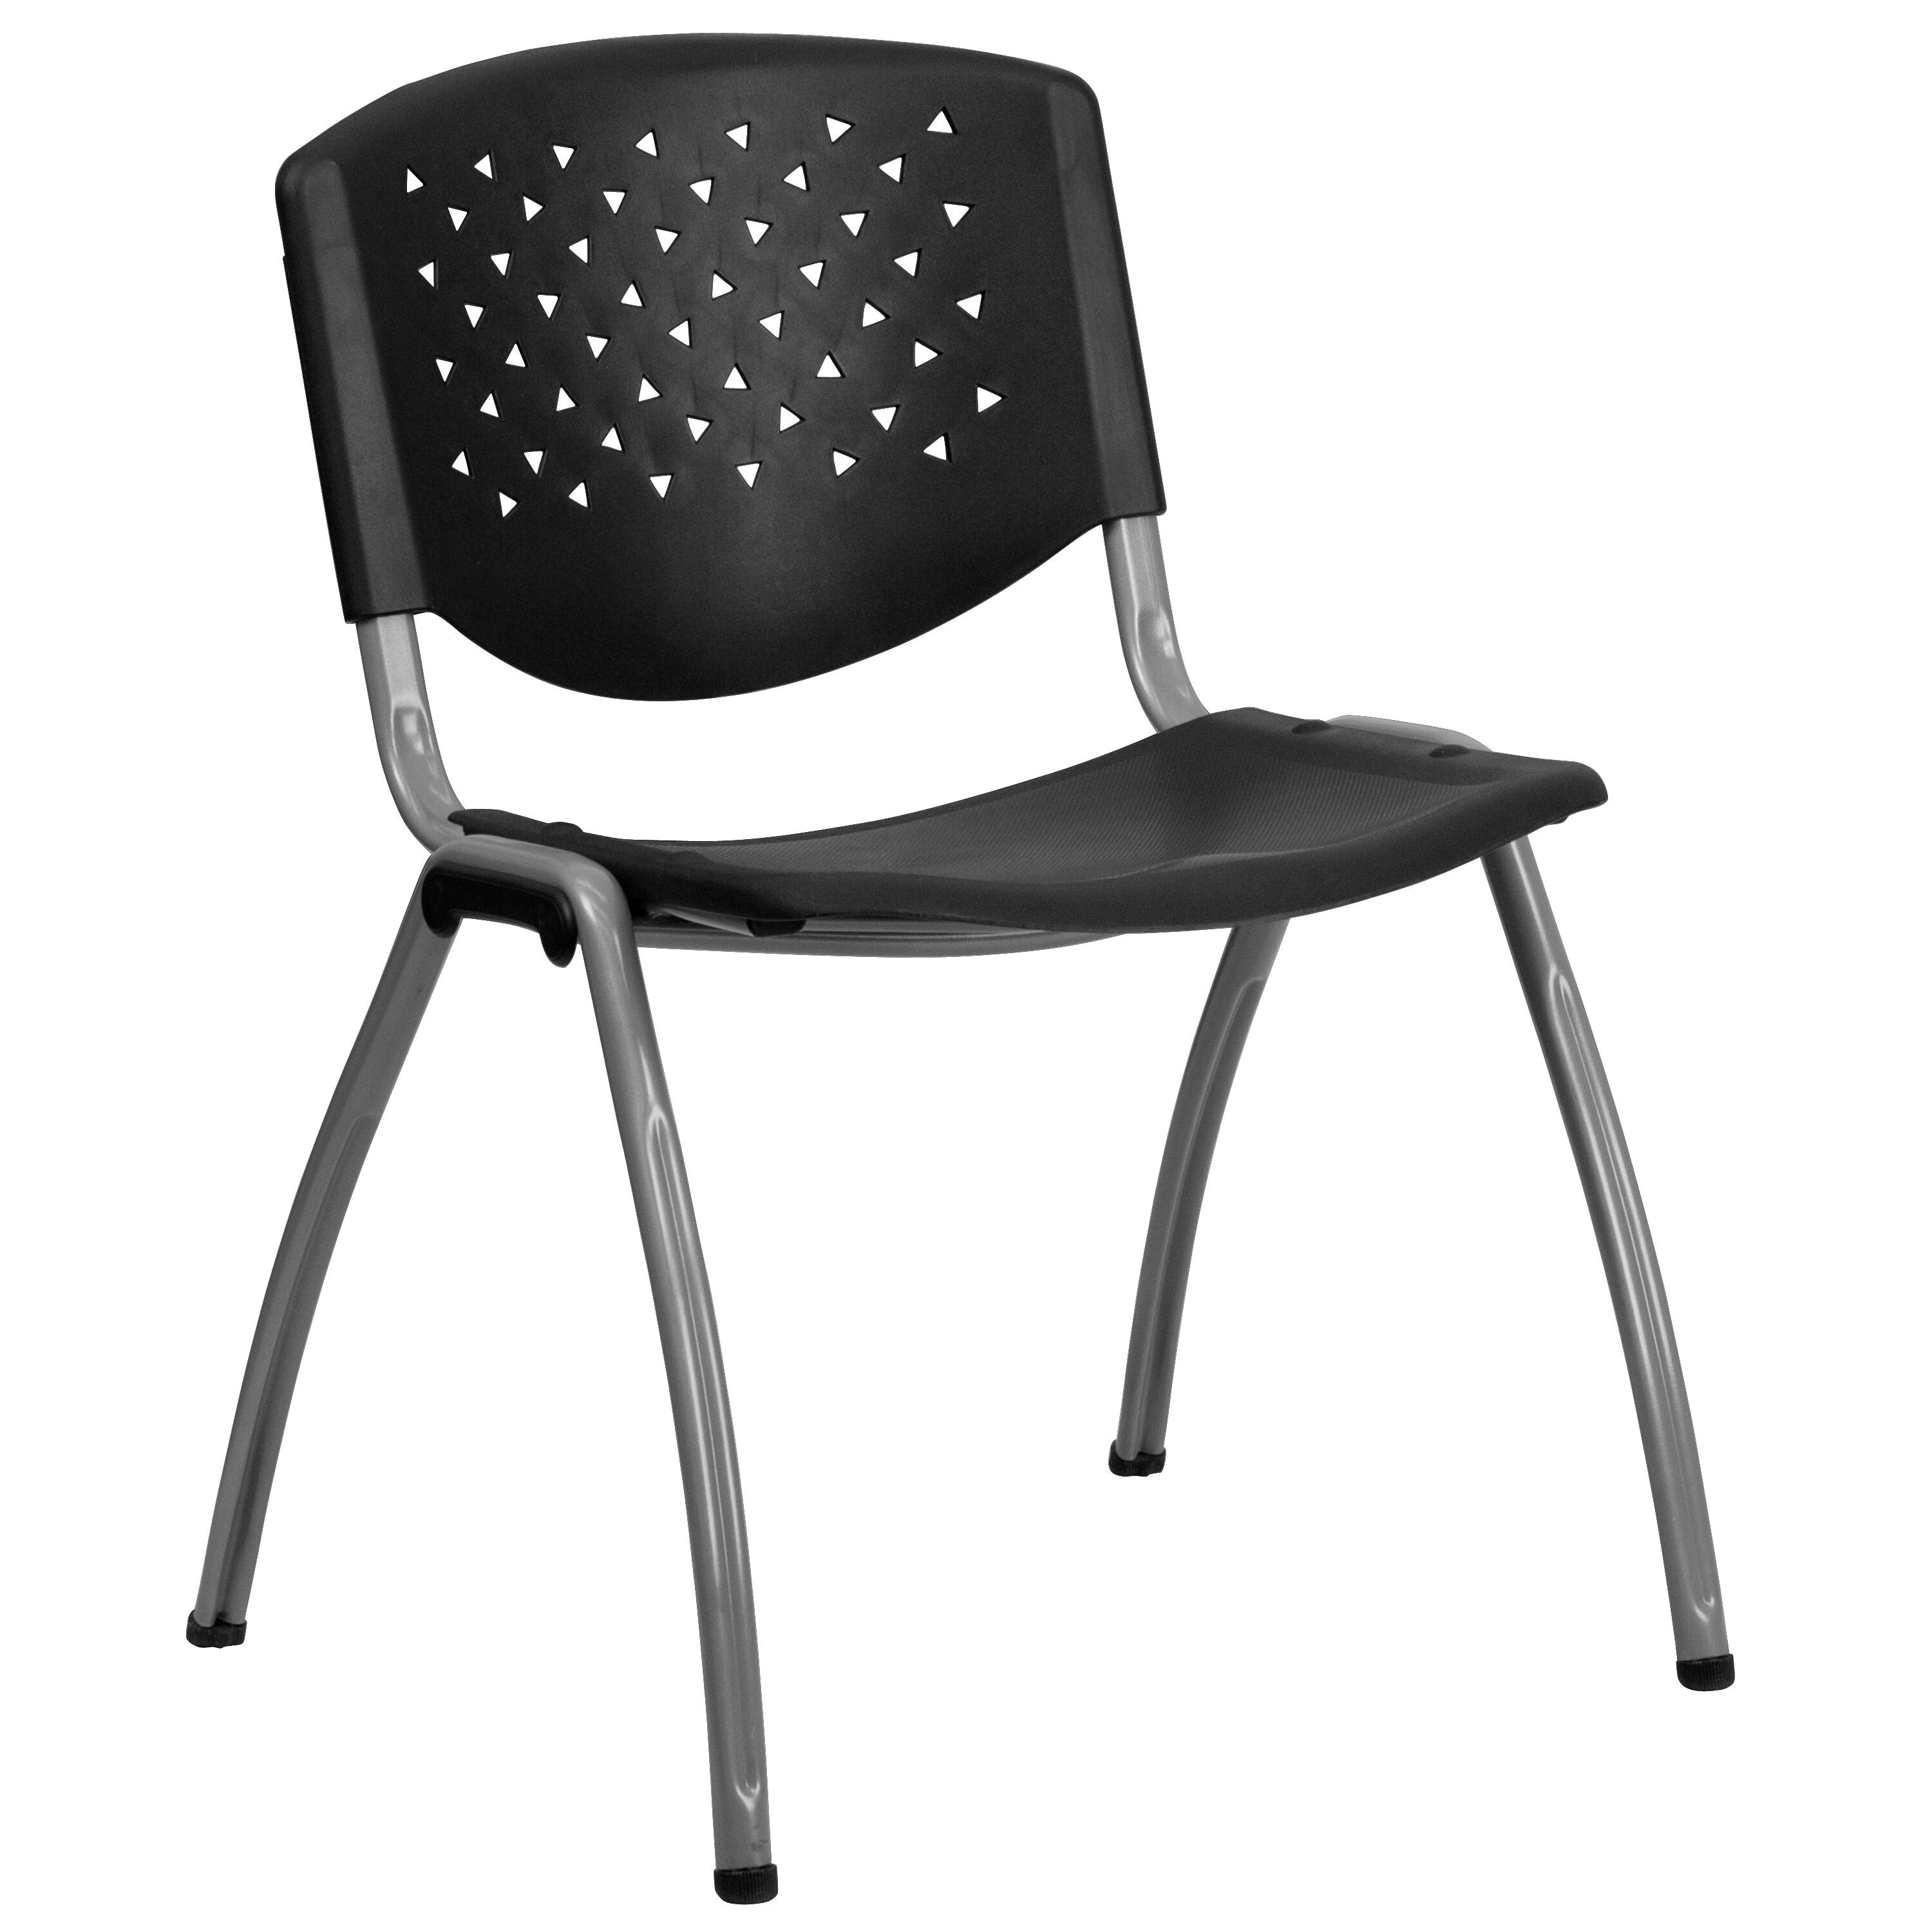 Black Plastic Stack Chair RUTF01ABKGG